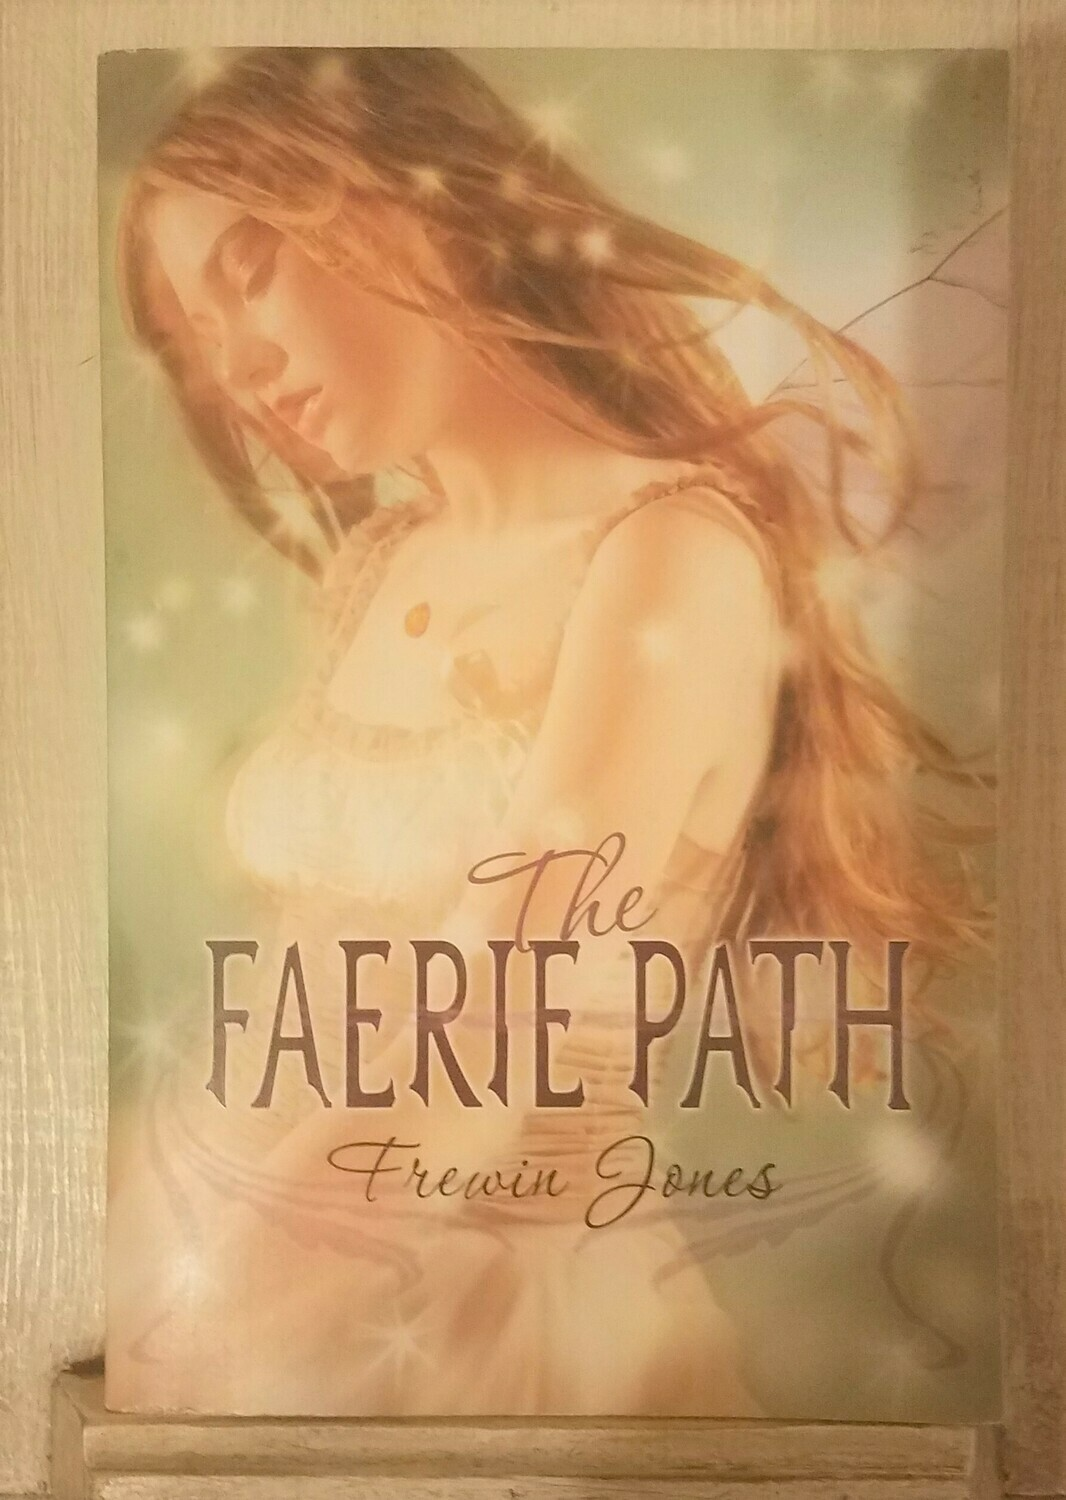 The Faerie Path by Frewin Jones